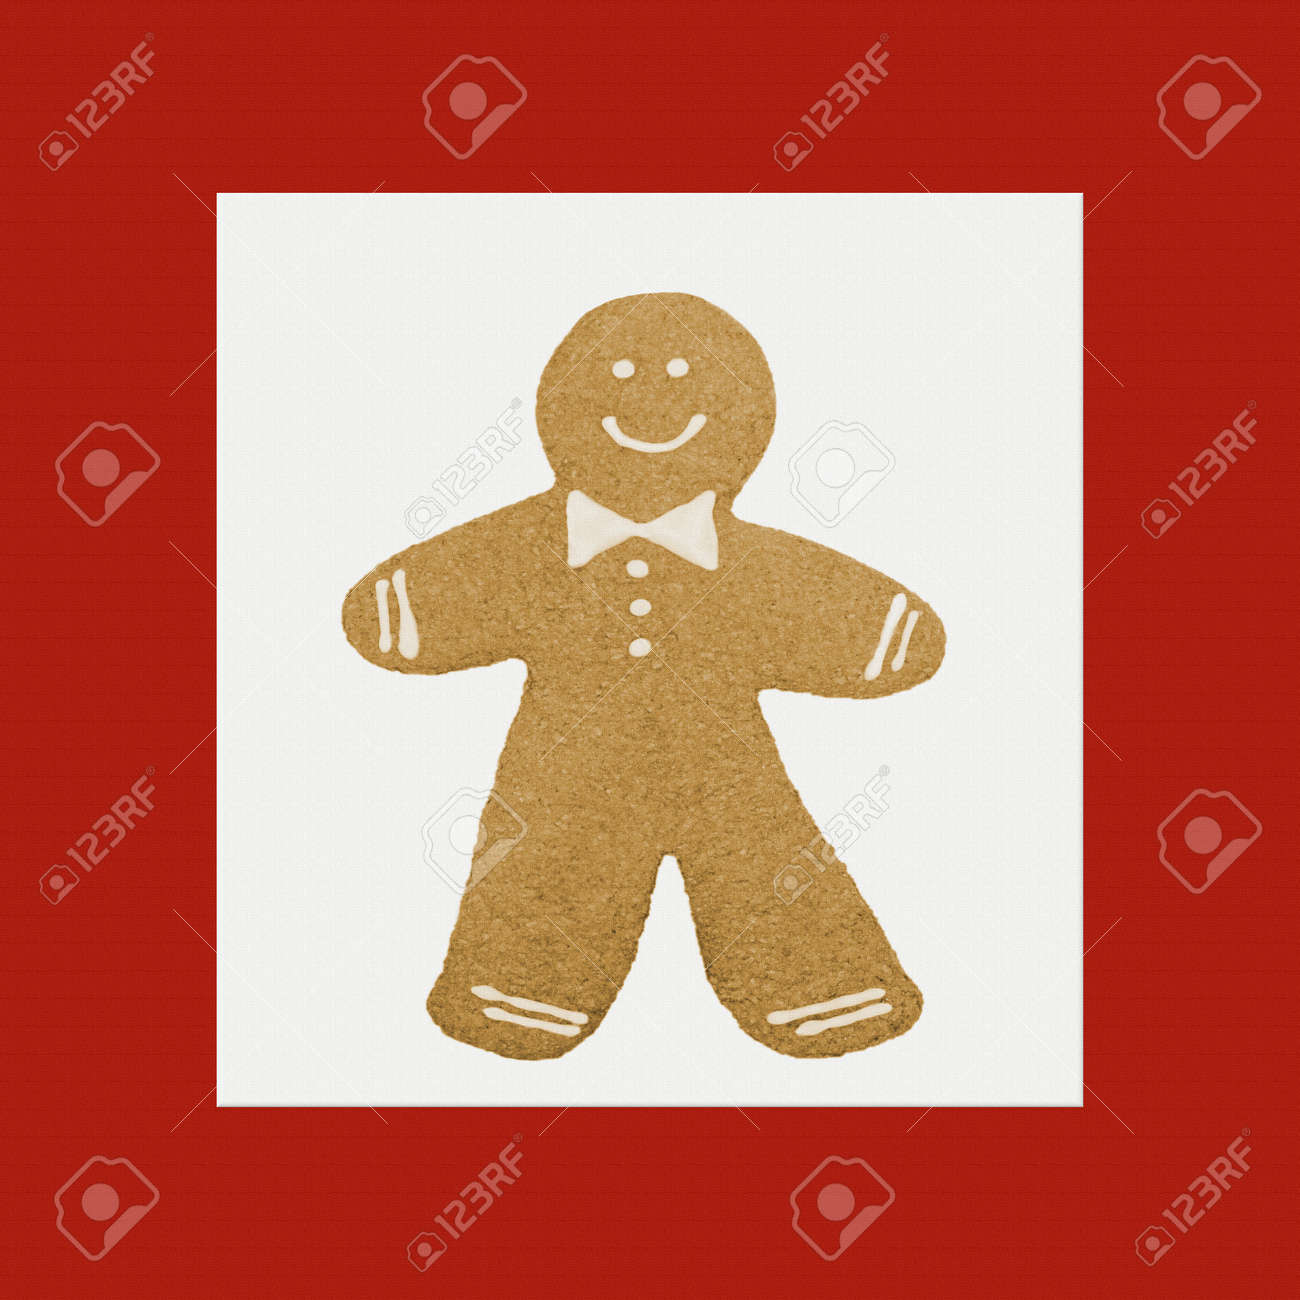 Christmas Gingerbread Man Pattern On A Red Canvas Background Stock